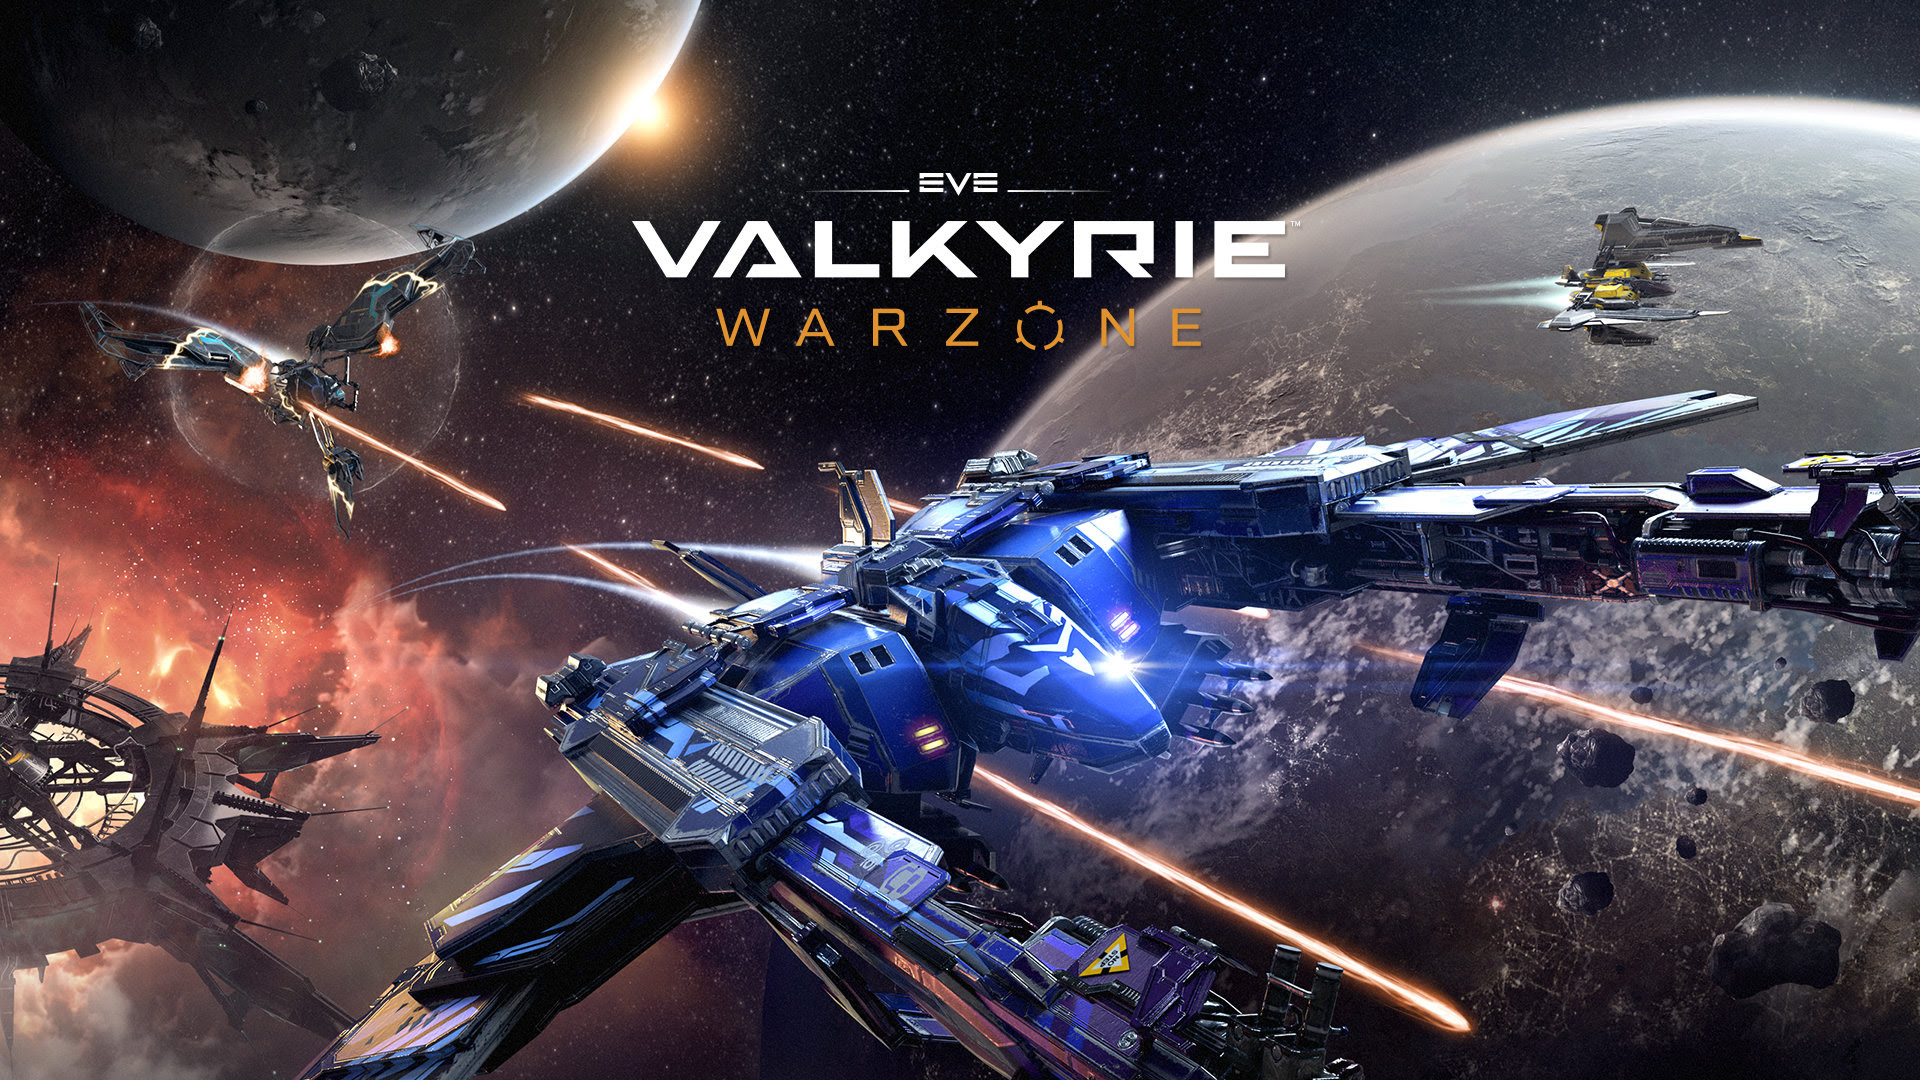 You'll soon be able to play EVE: Valkyrie without a VR headset